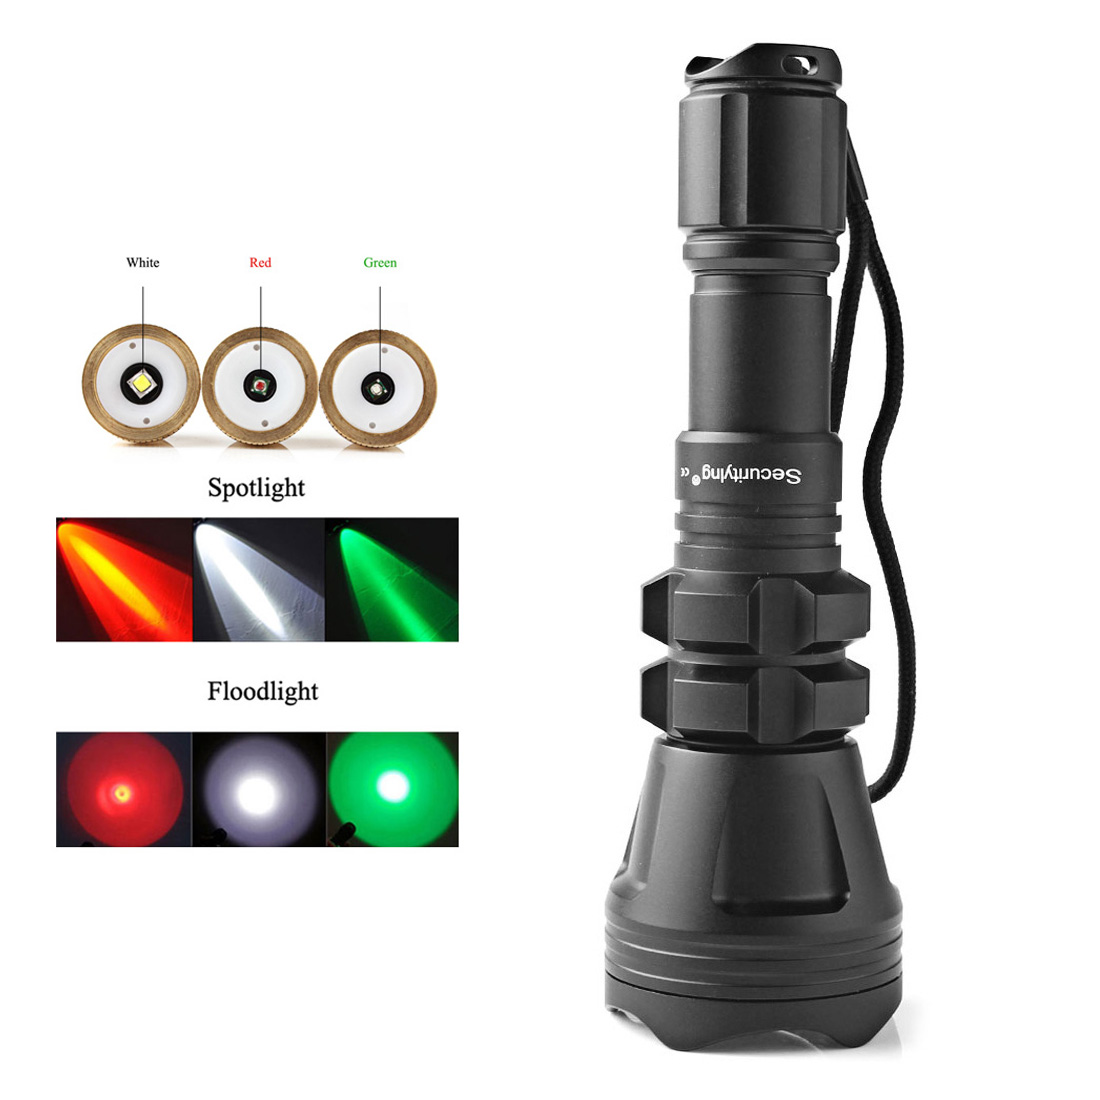 SecurityIng Waterproof LED Flashlight XM L2 U4 Led 900LM Hunting Lamp 5 Modes Zoomable Torch with Remote Pressure Switch